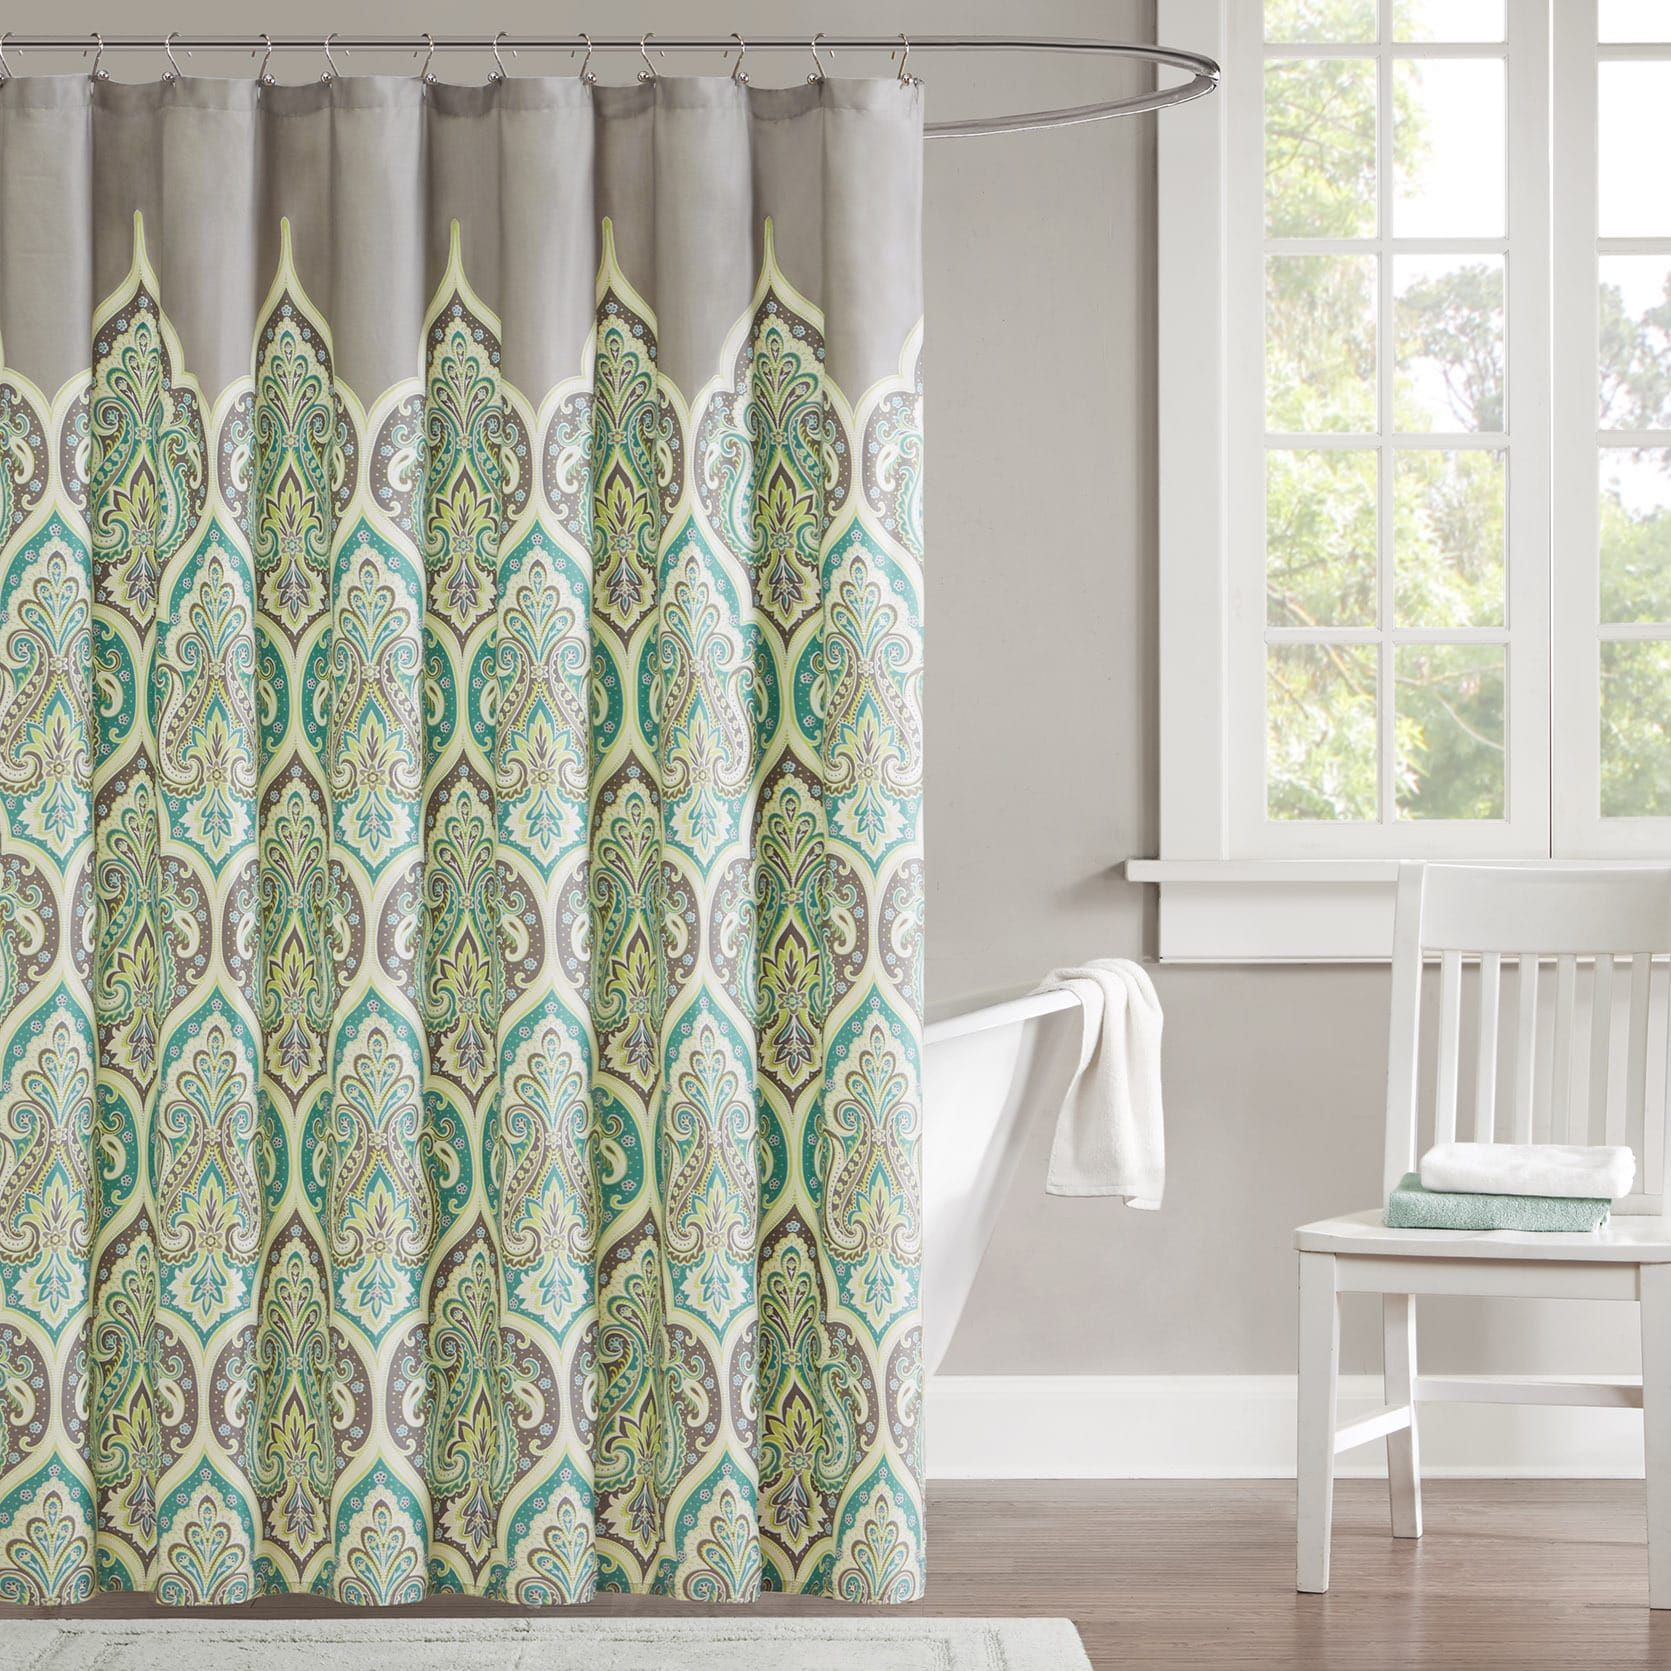 Fresh Images Of Ocean Shower Curtain Bed Bath and Beyond - Best Home ...